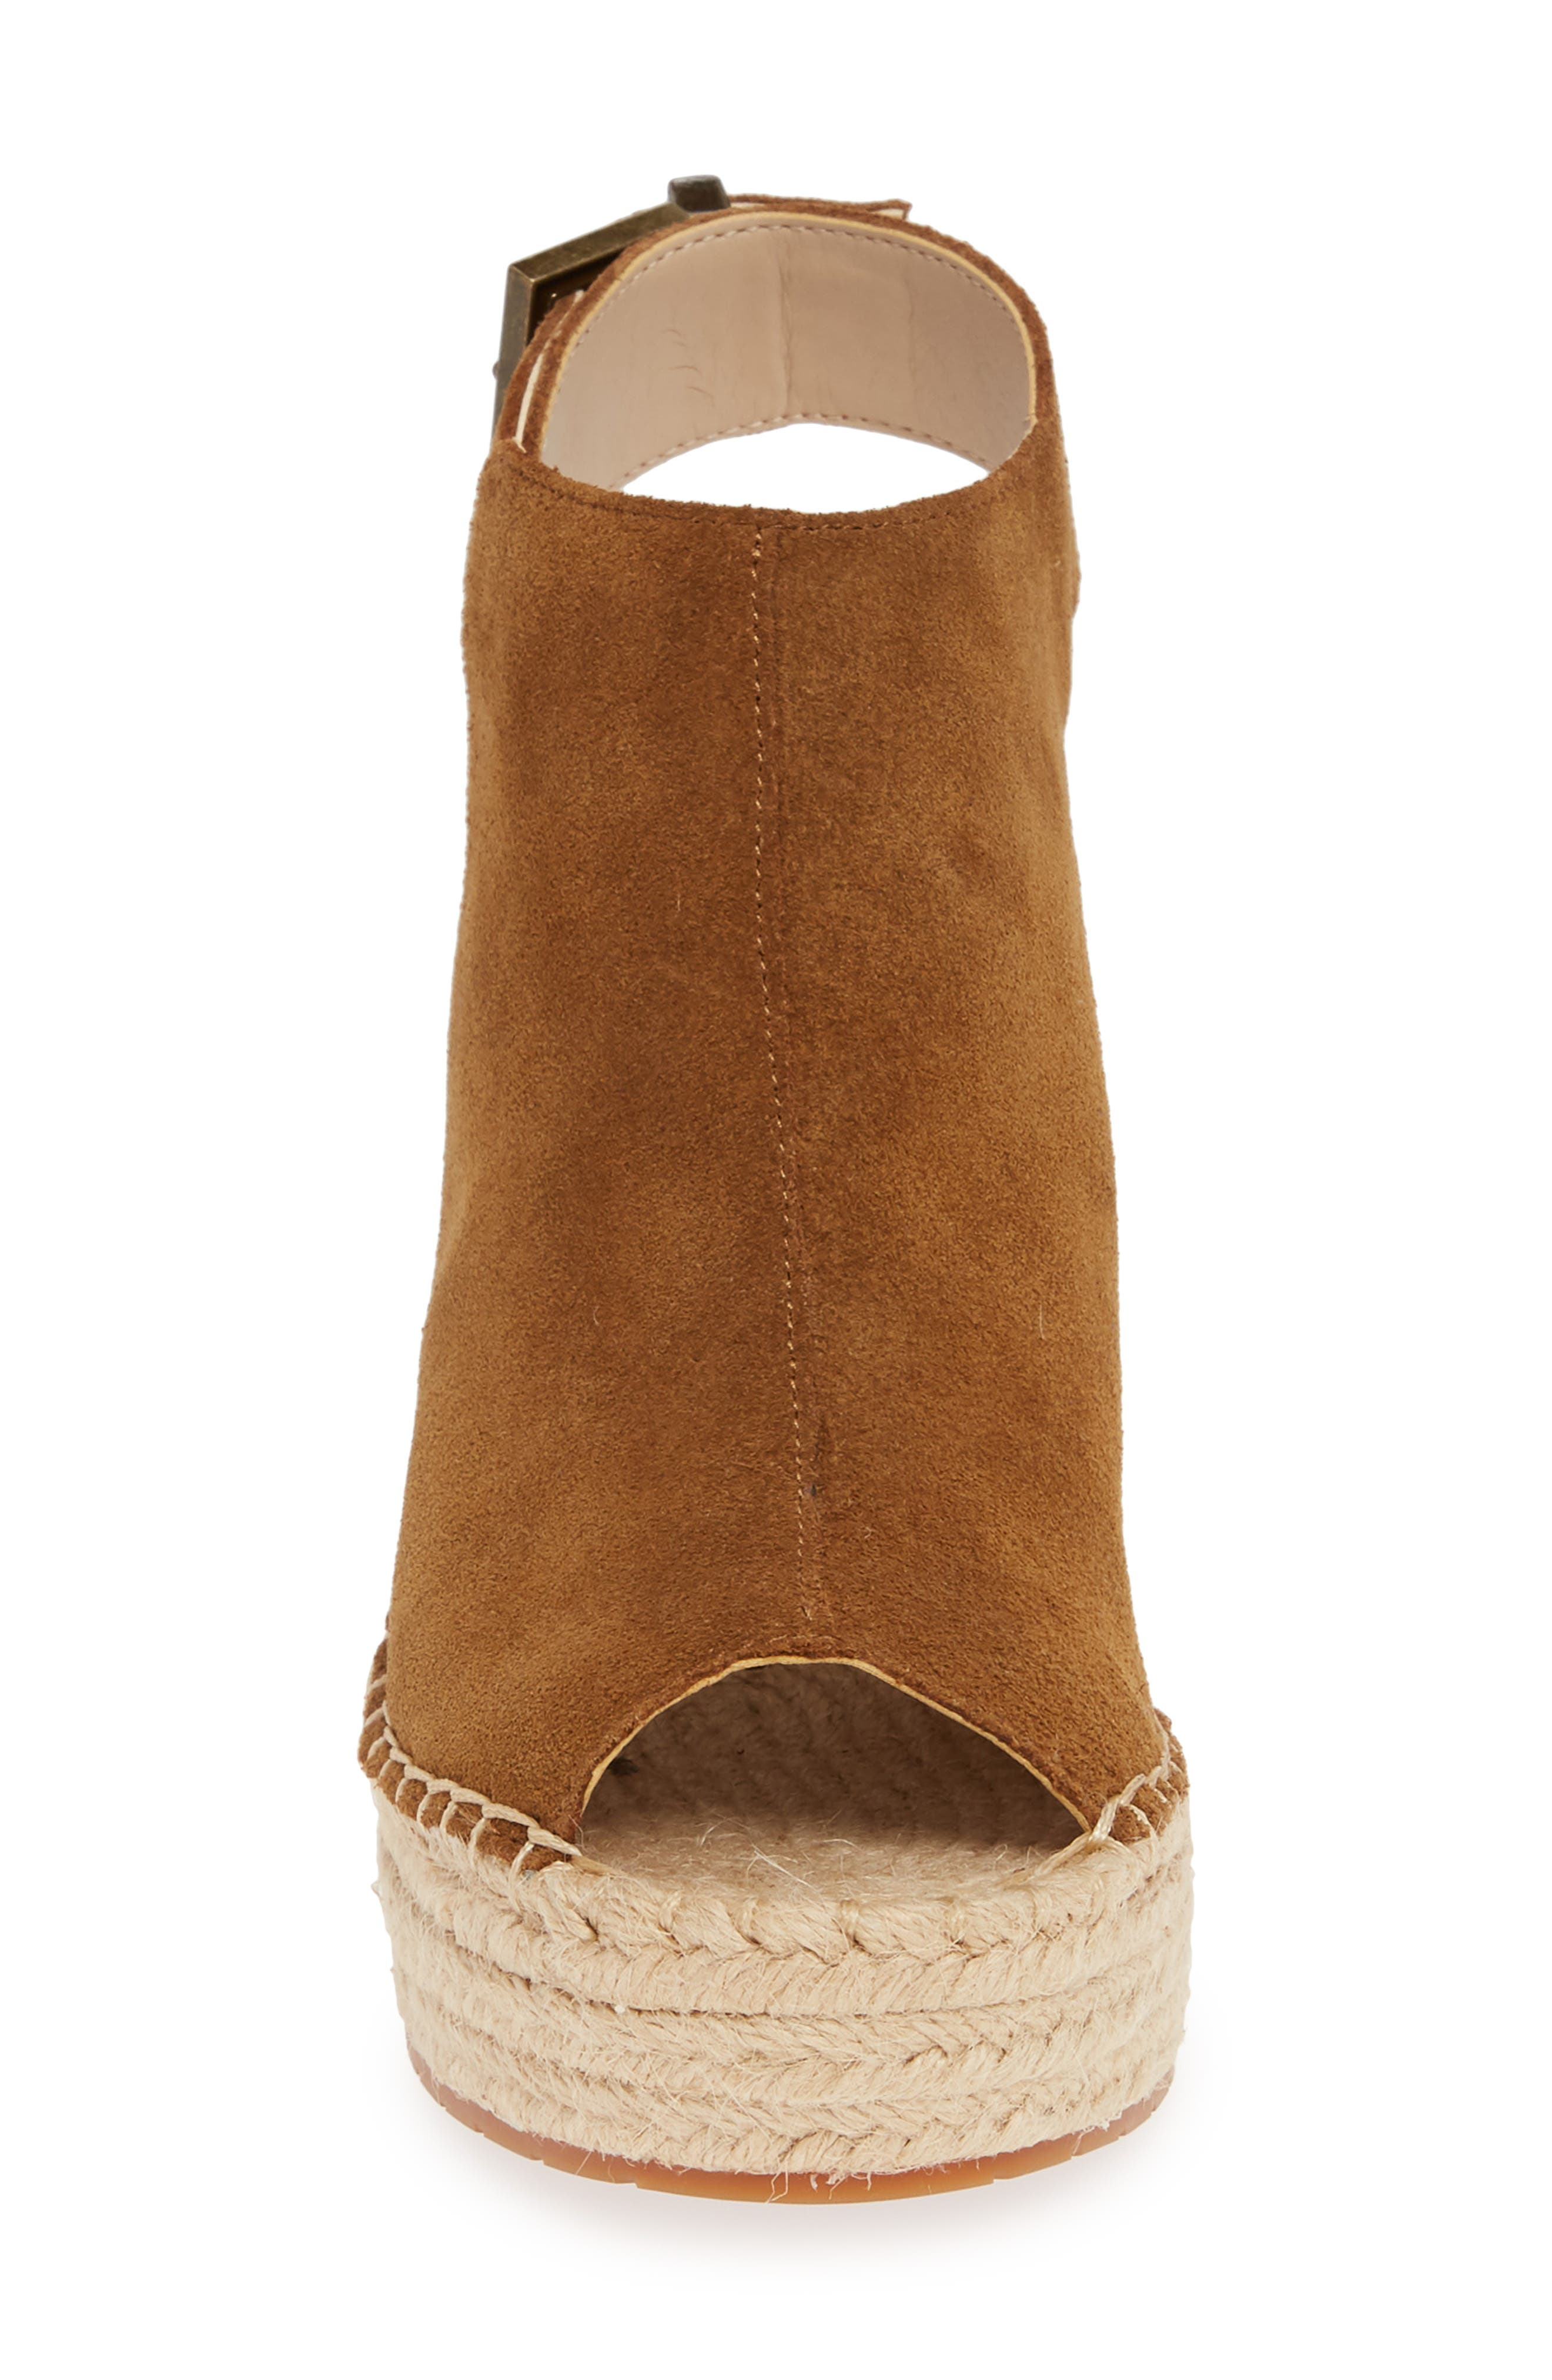 KENNETH COLE NEW YORK, 'Olivia' Espadrille Wedge Sandal, Alternate thumbnail 4, color, RUST SUEDE